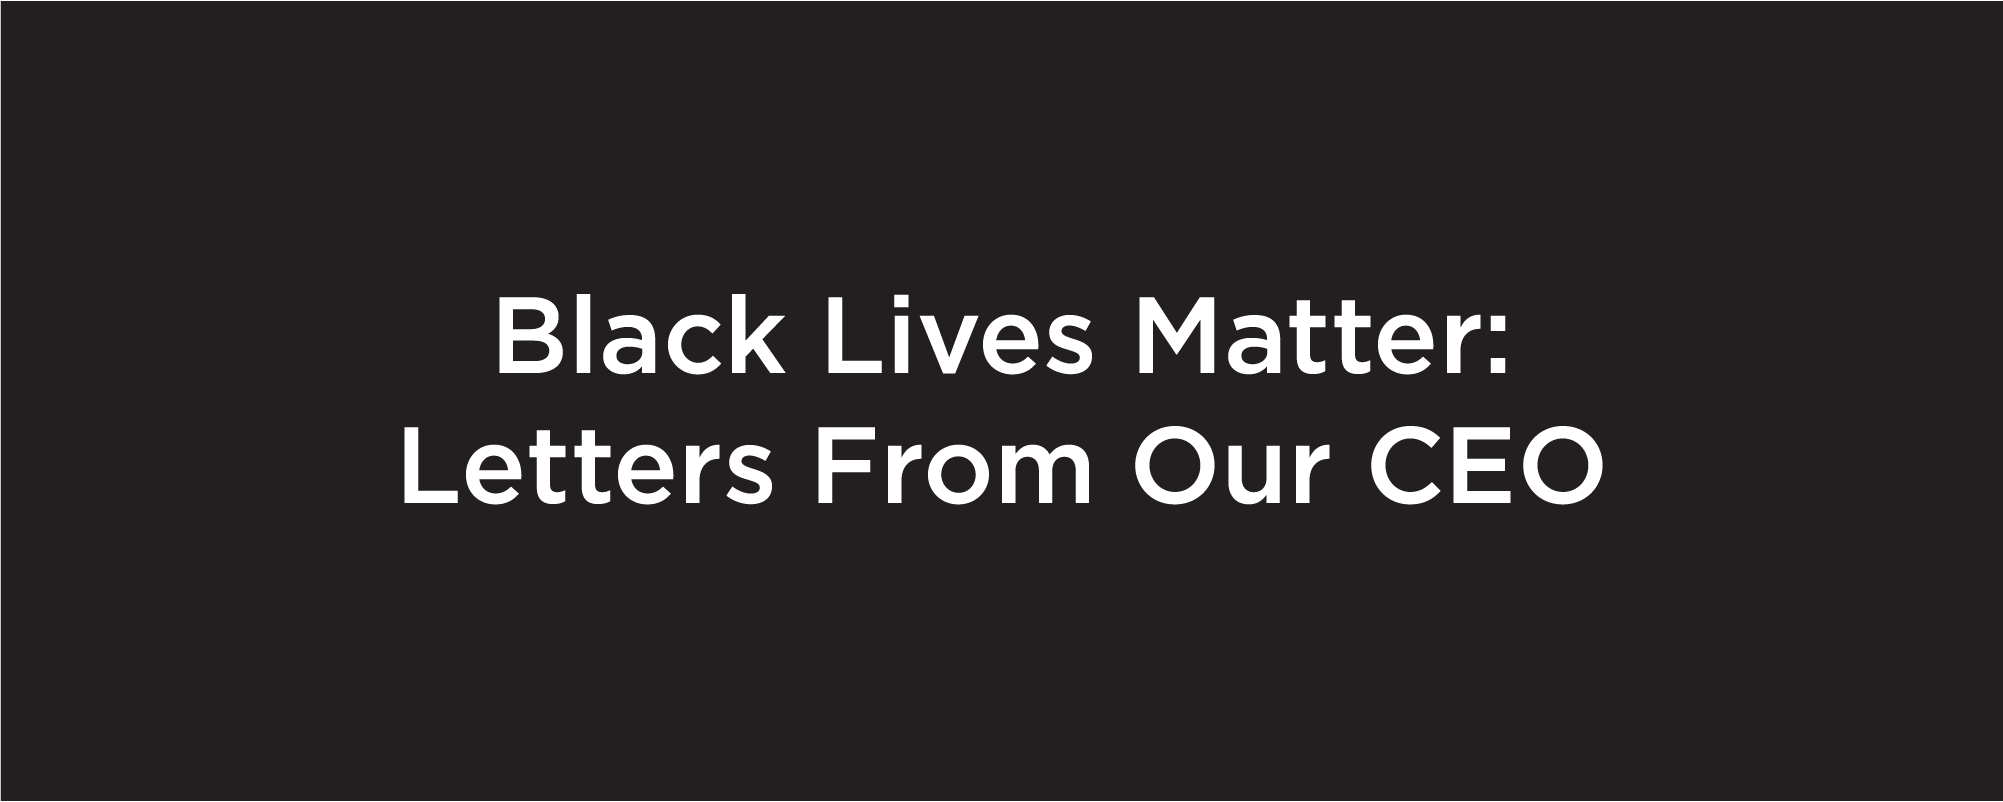 black lives matter letters from our ceo